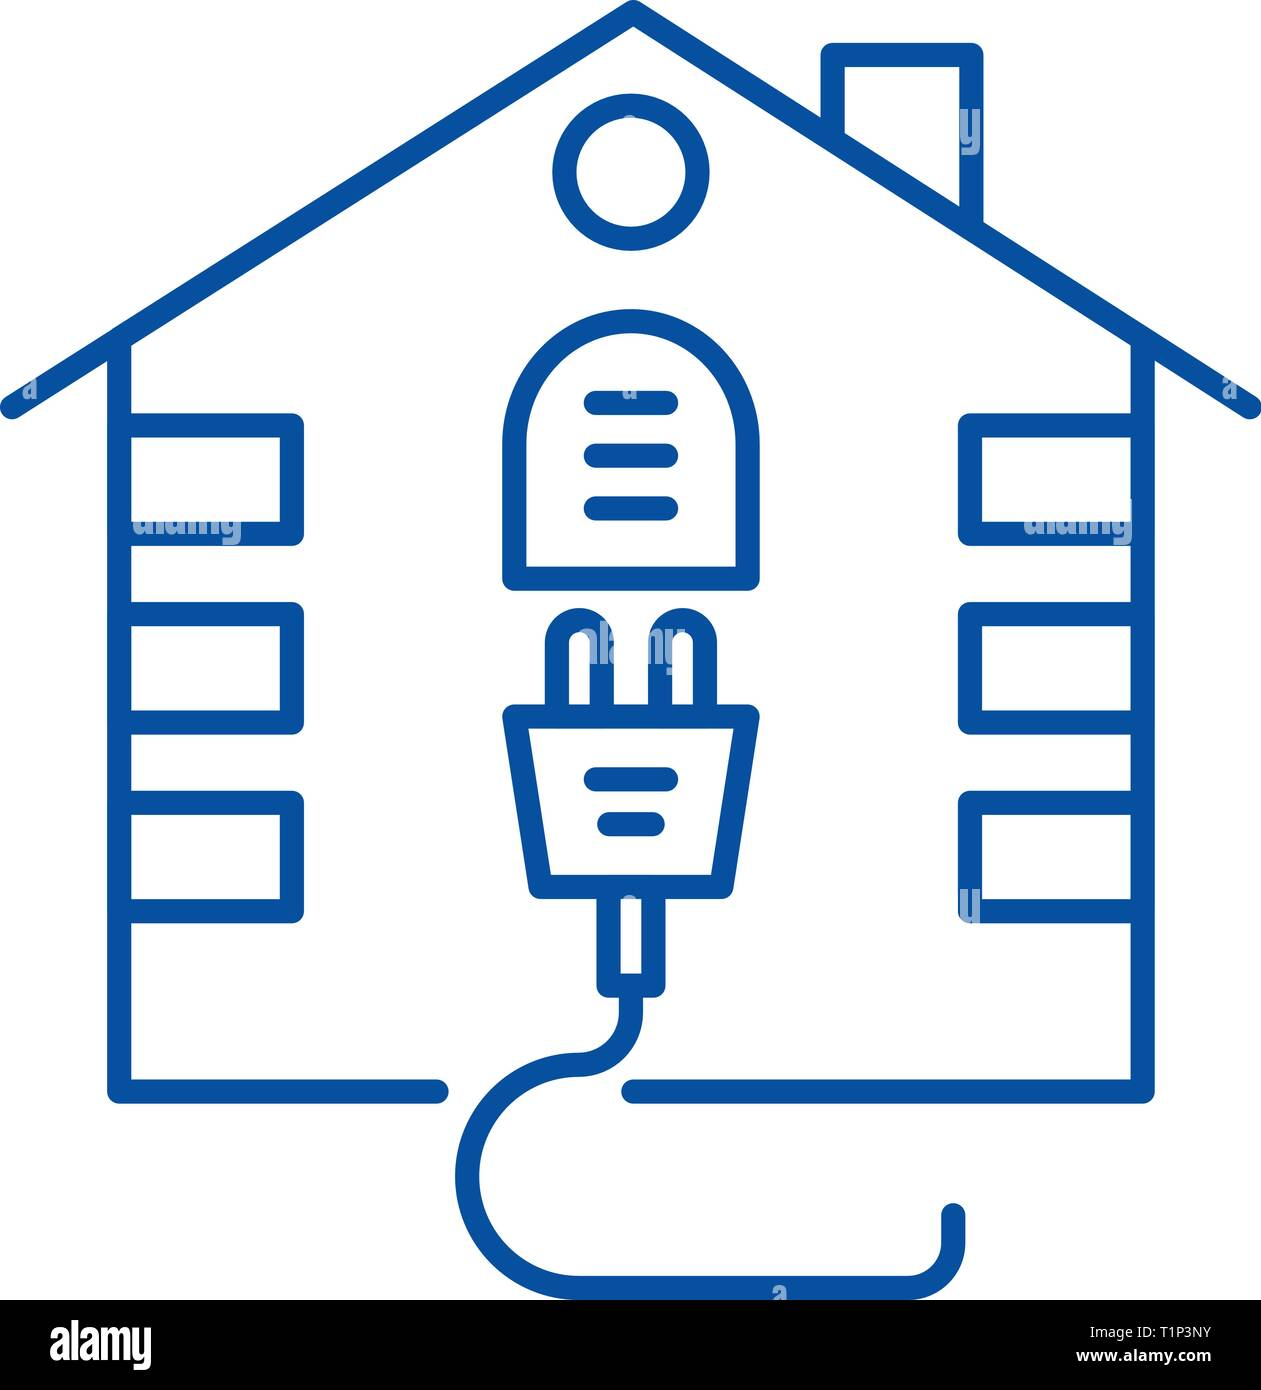 Home Electrical Wiring Symbols For